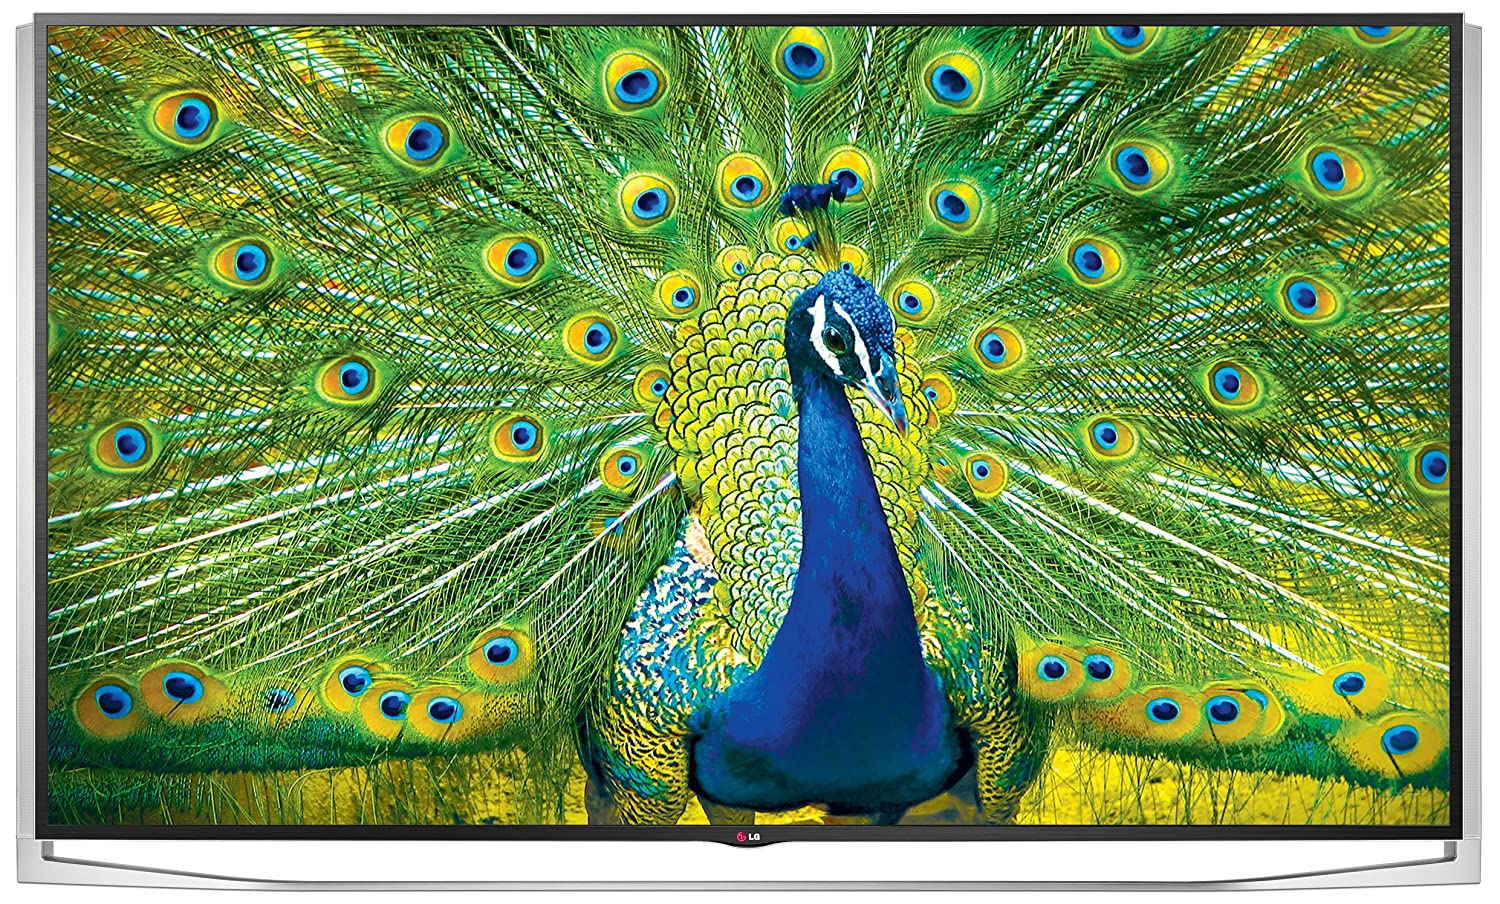 LG Electronics 79UB9800 79-Inch 4K Ultra HD 120Hz 3D LED TV (Big Game Special)